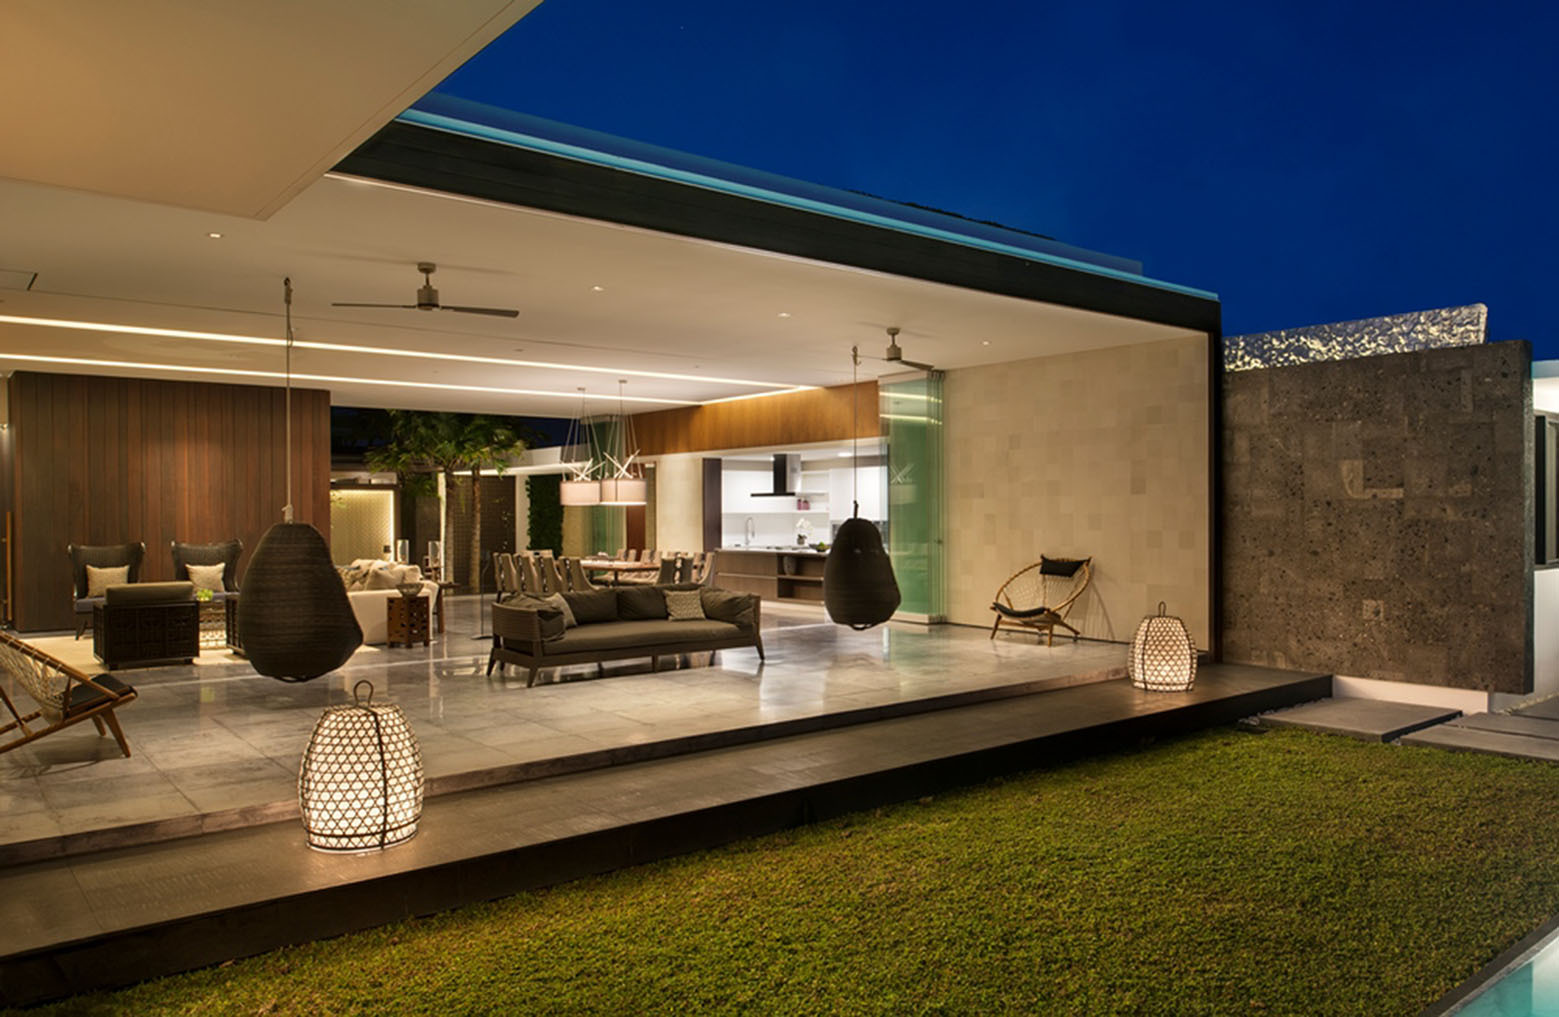 Modern Resort Villa With Balinese Theme Idesignarch